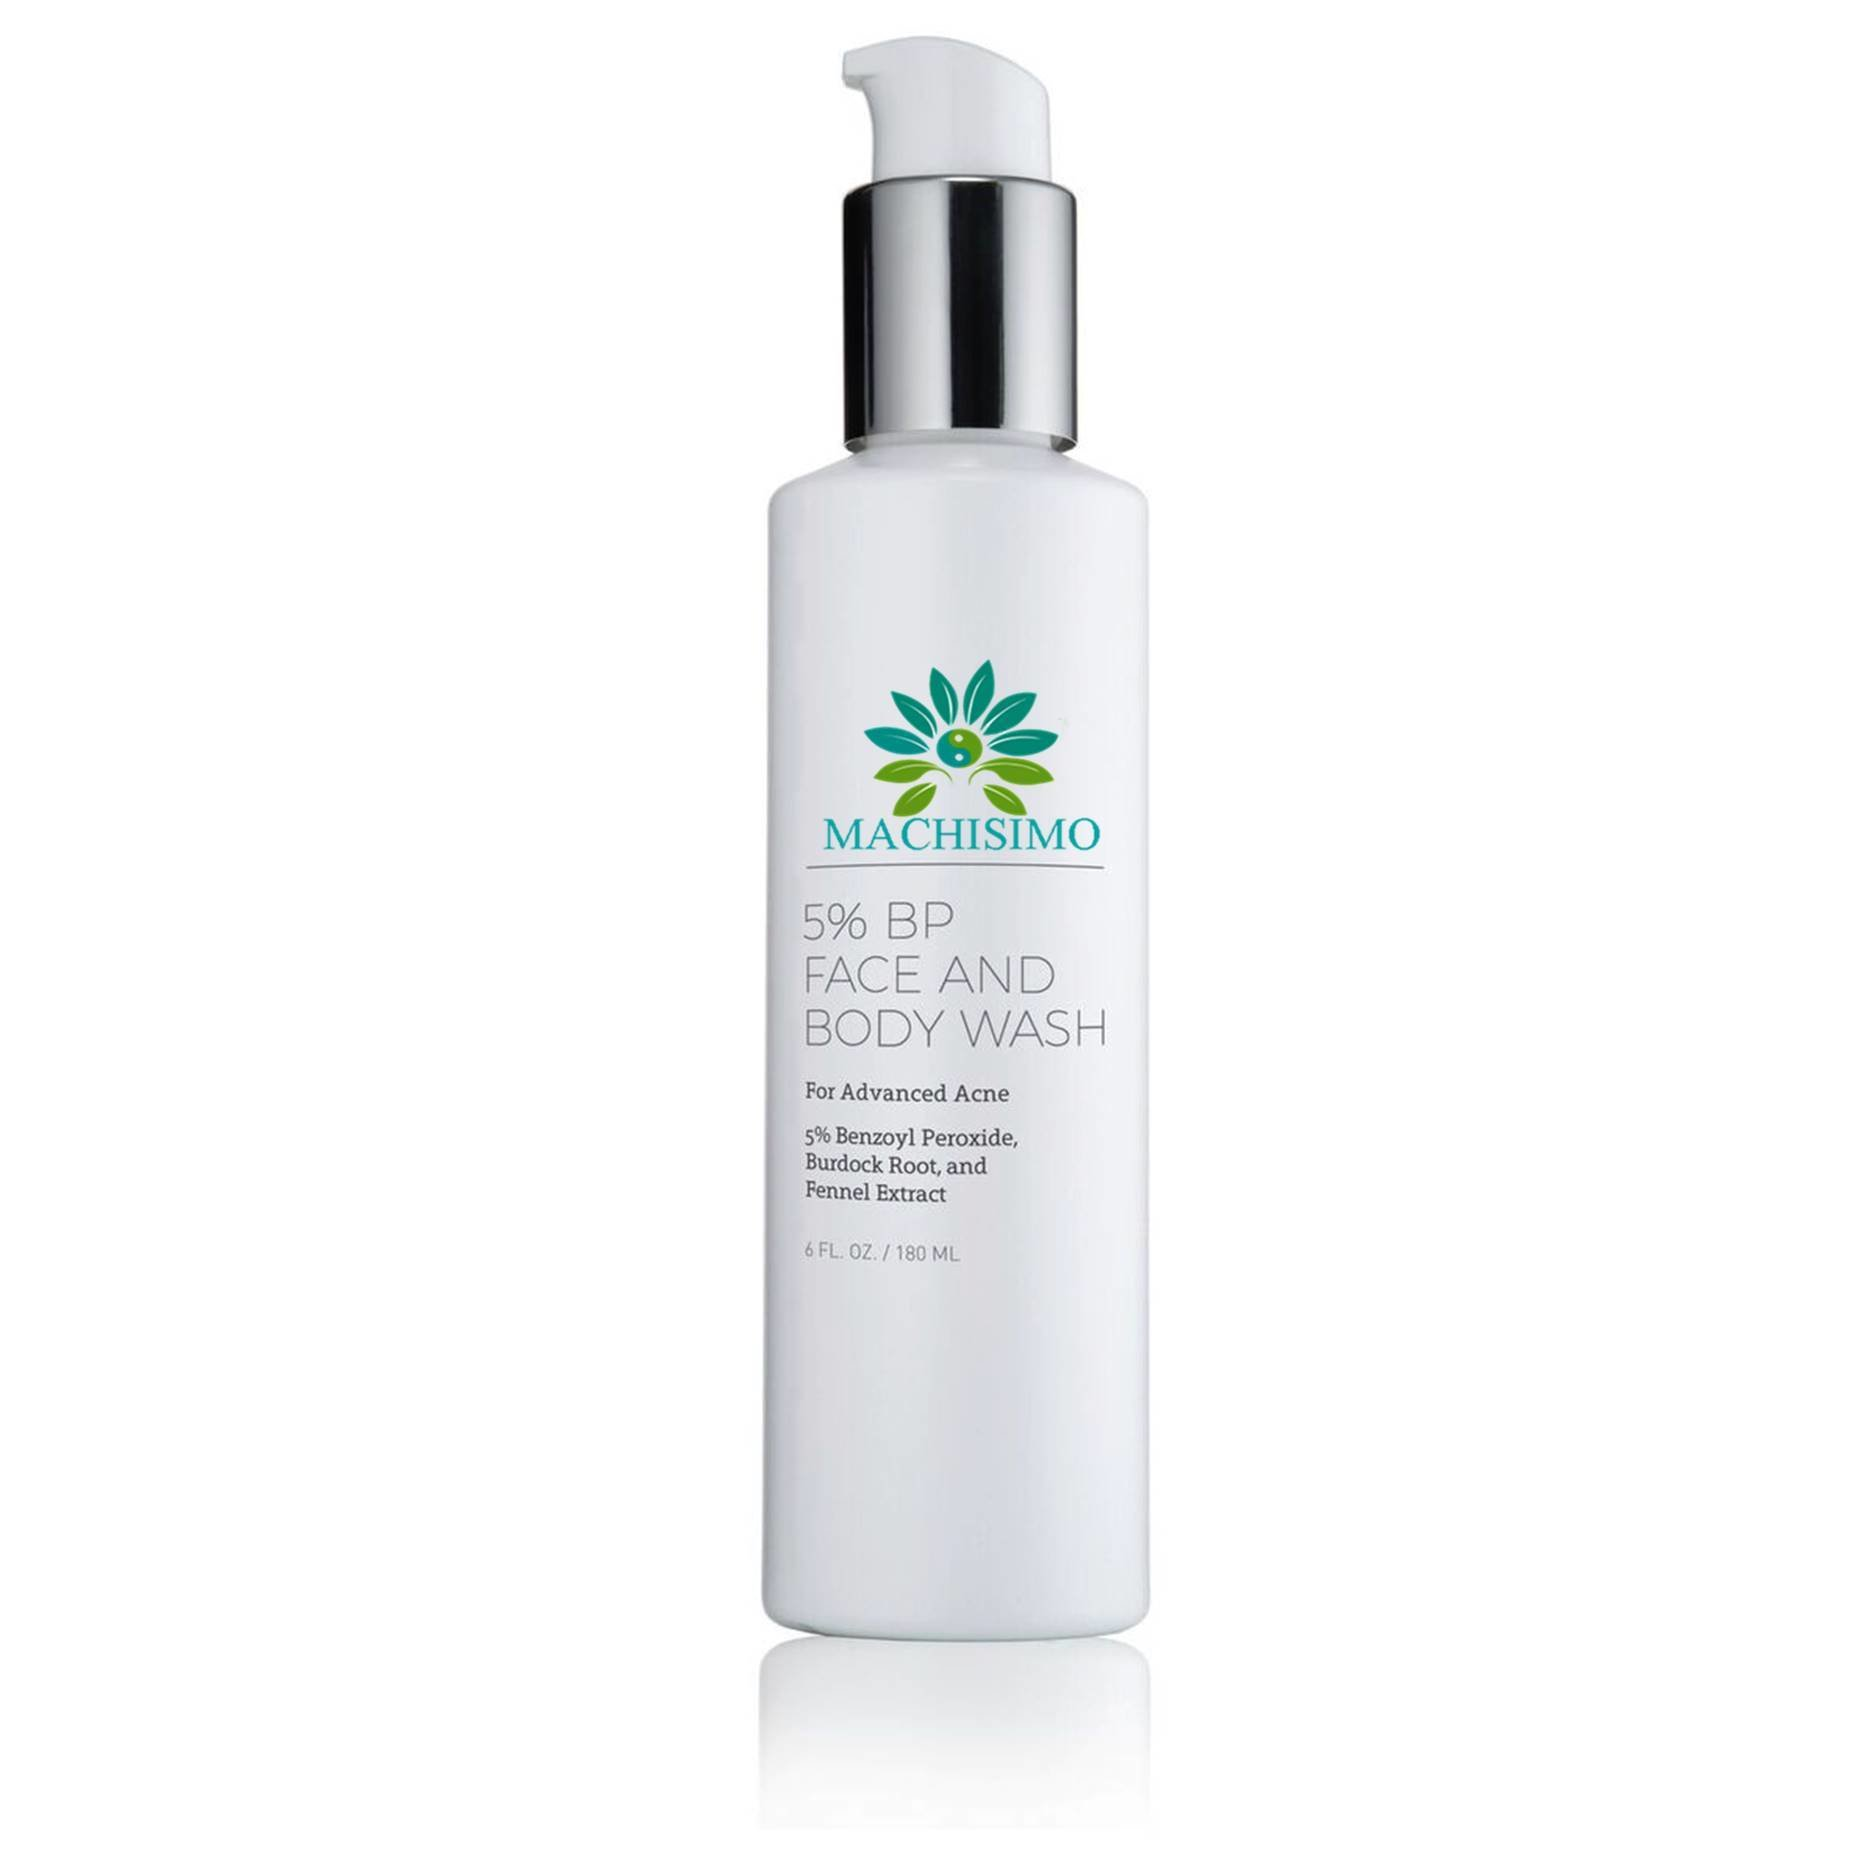 5% BP FACE AND BODY WASH 00001